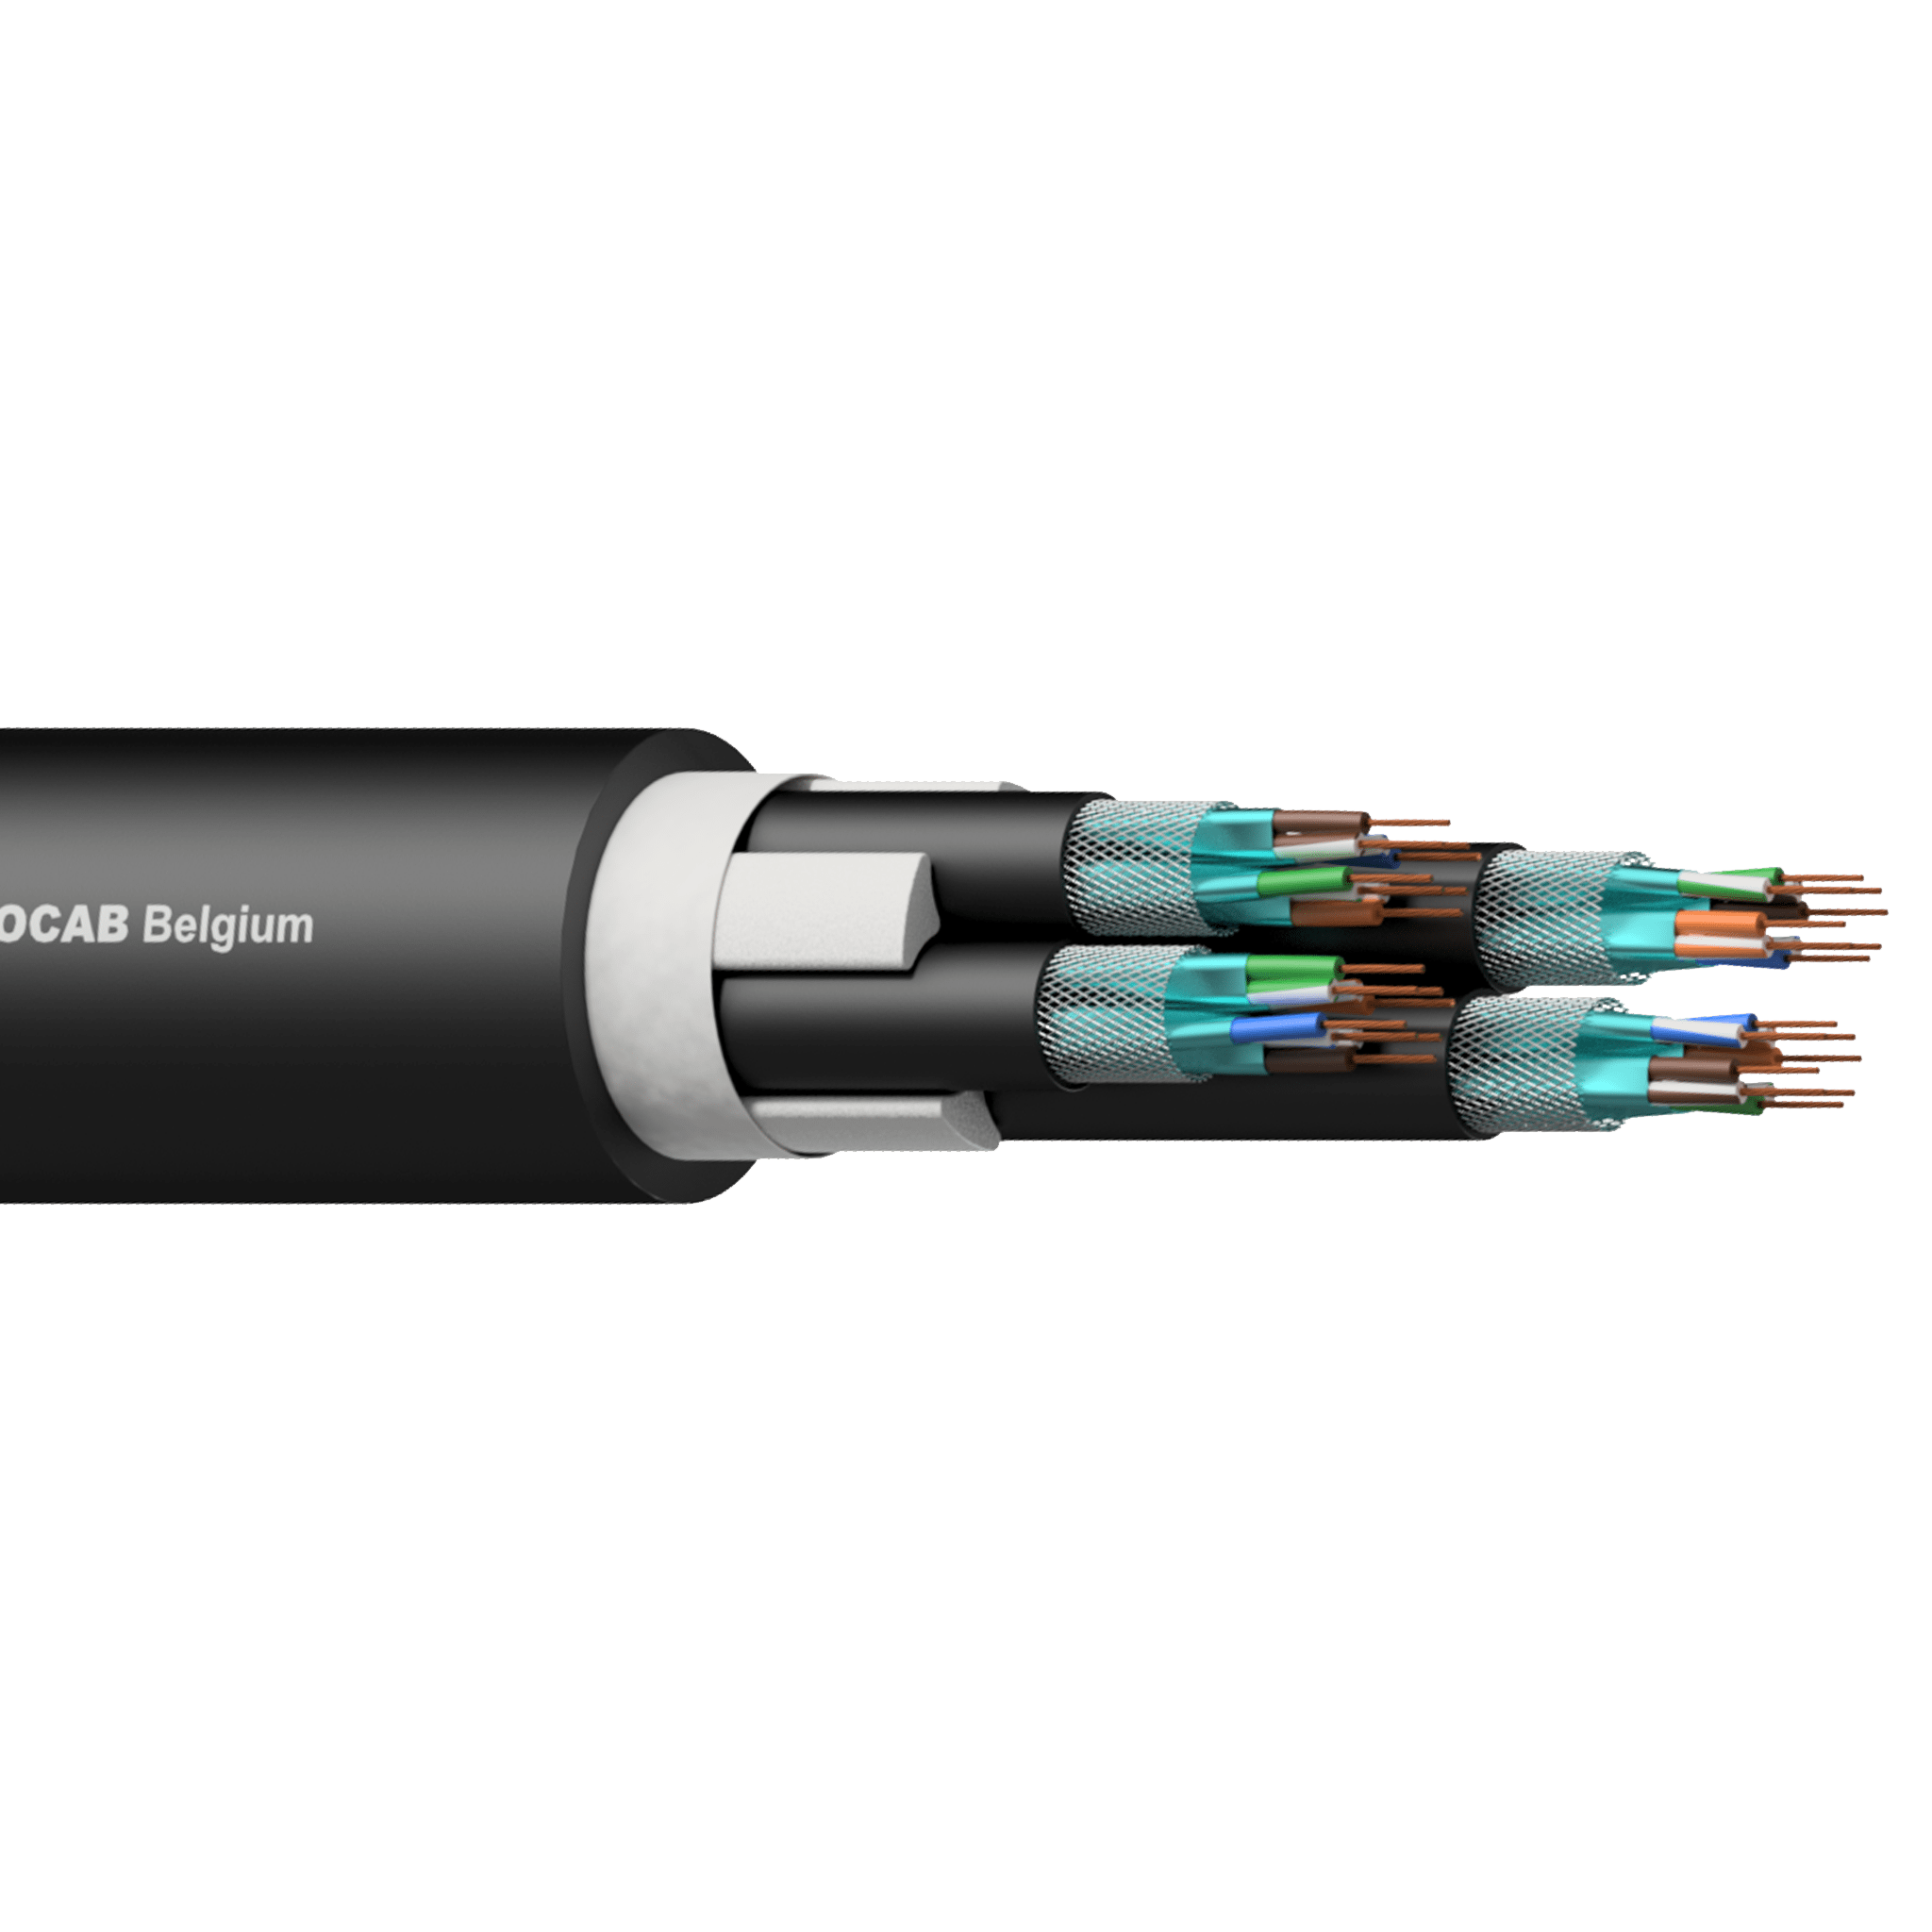 PNC047 - 4 x CAT7 S/FTP networking cable